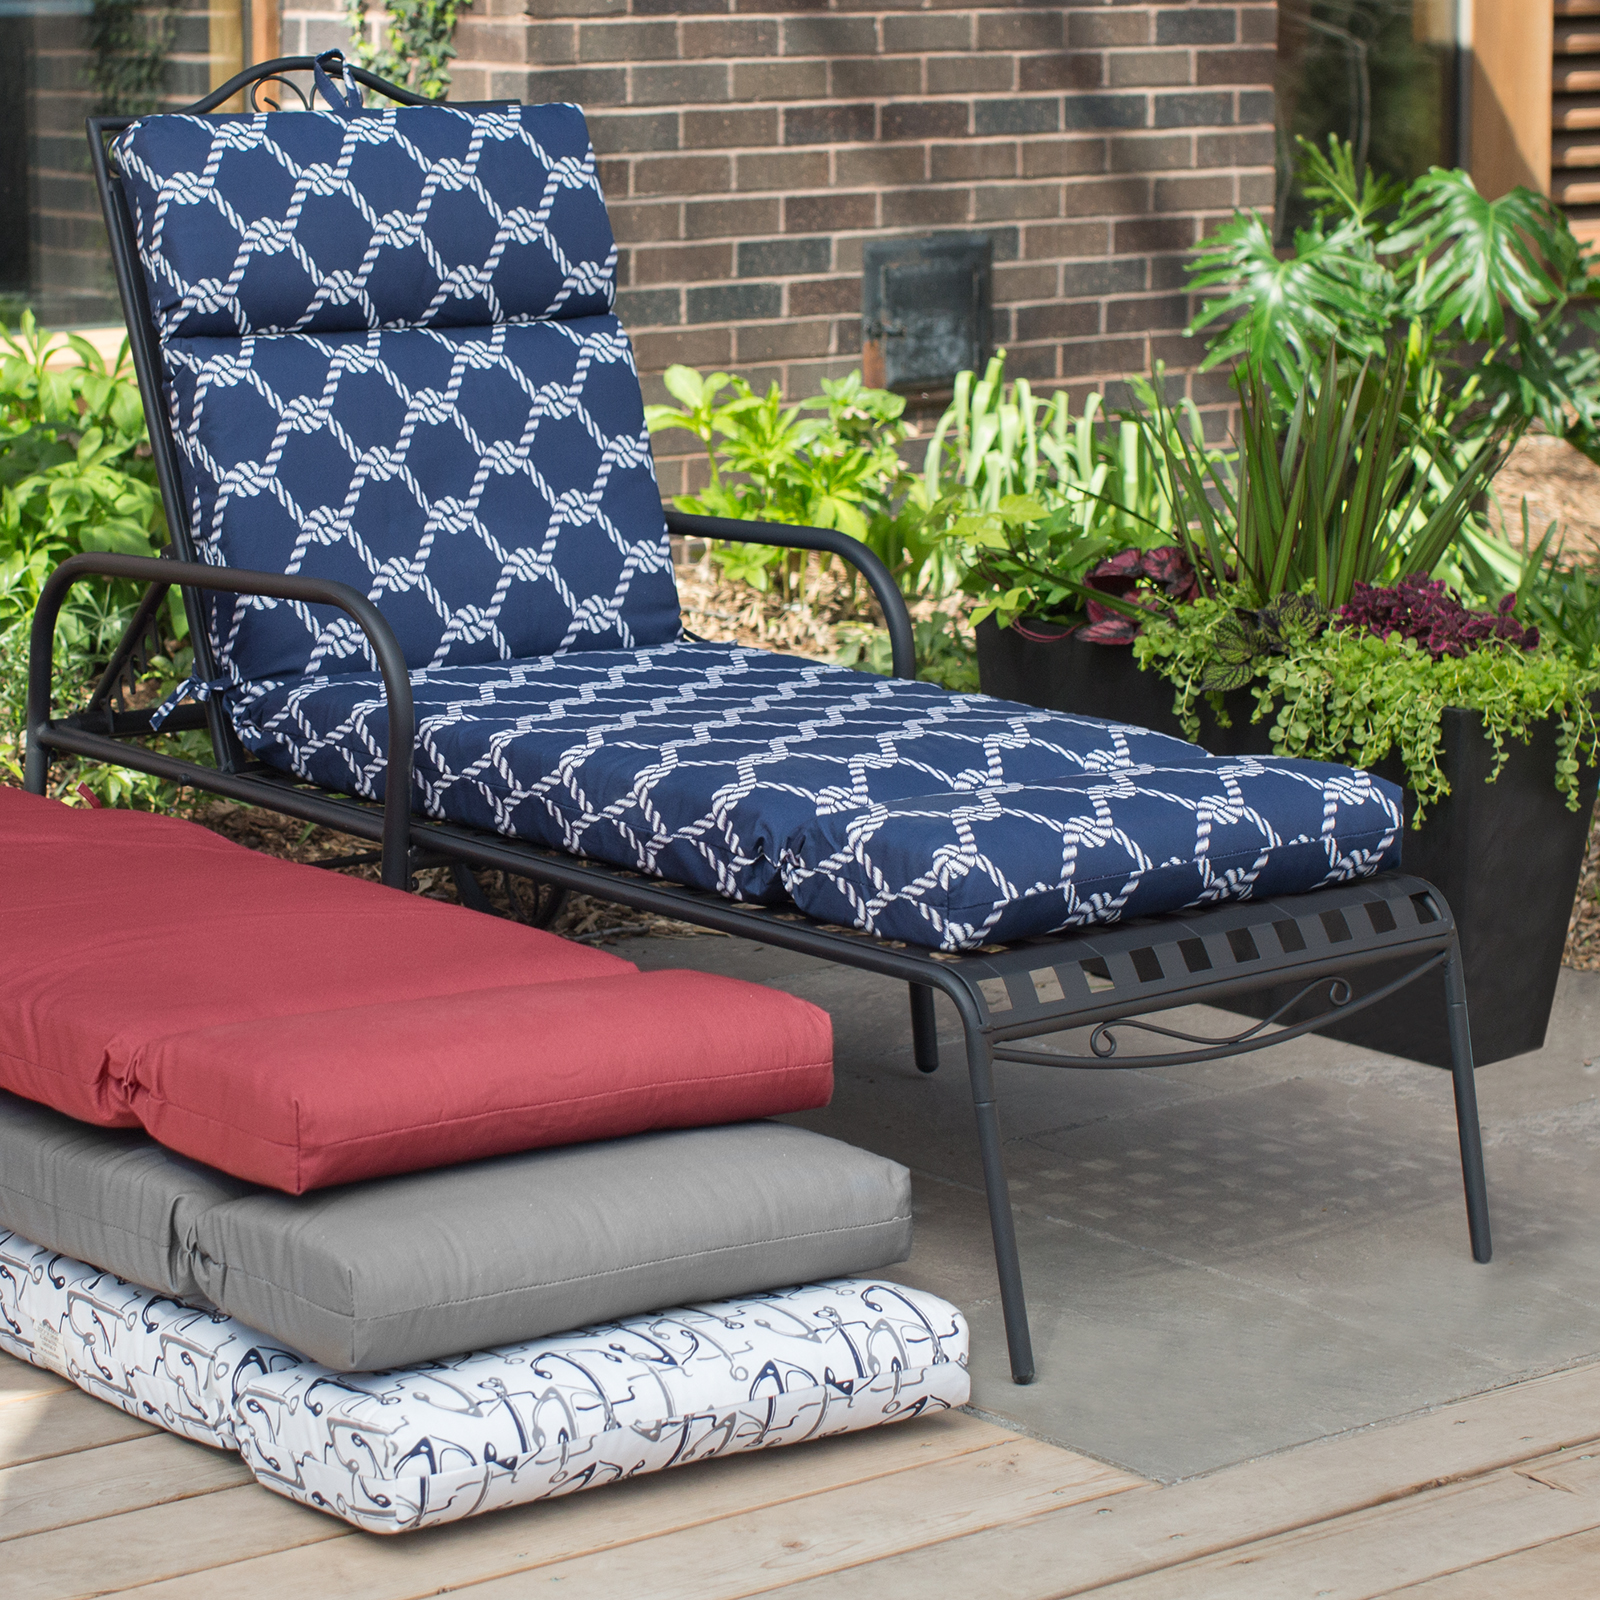 QUICK VIEW. Coral Coast Nautical French Edge 72 in. Outdoor Chaise Lounge Cushion : patio chaise cushion - Sectionals, Sofas & Couches